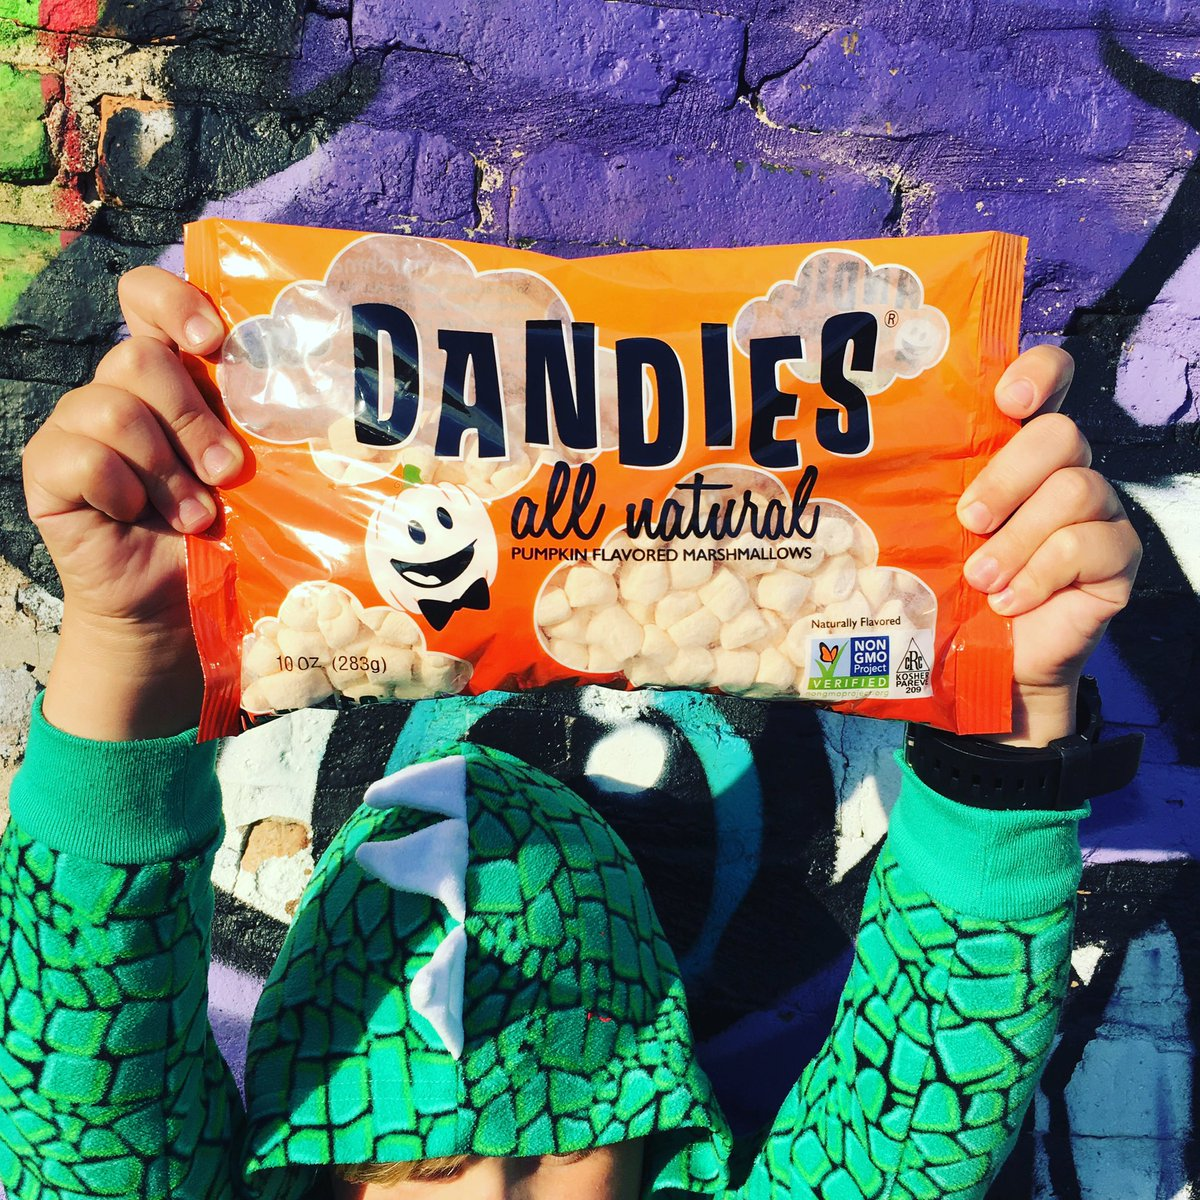 Retweet this pic of Lizard boy with a bag of Pumpkin Dandies for a chance to win a bag for yo' self! https://t.co/zhtVIcSDvz